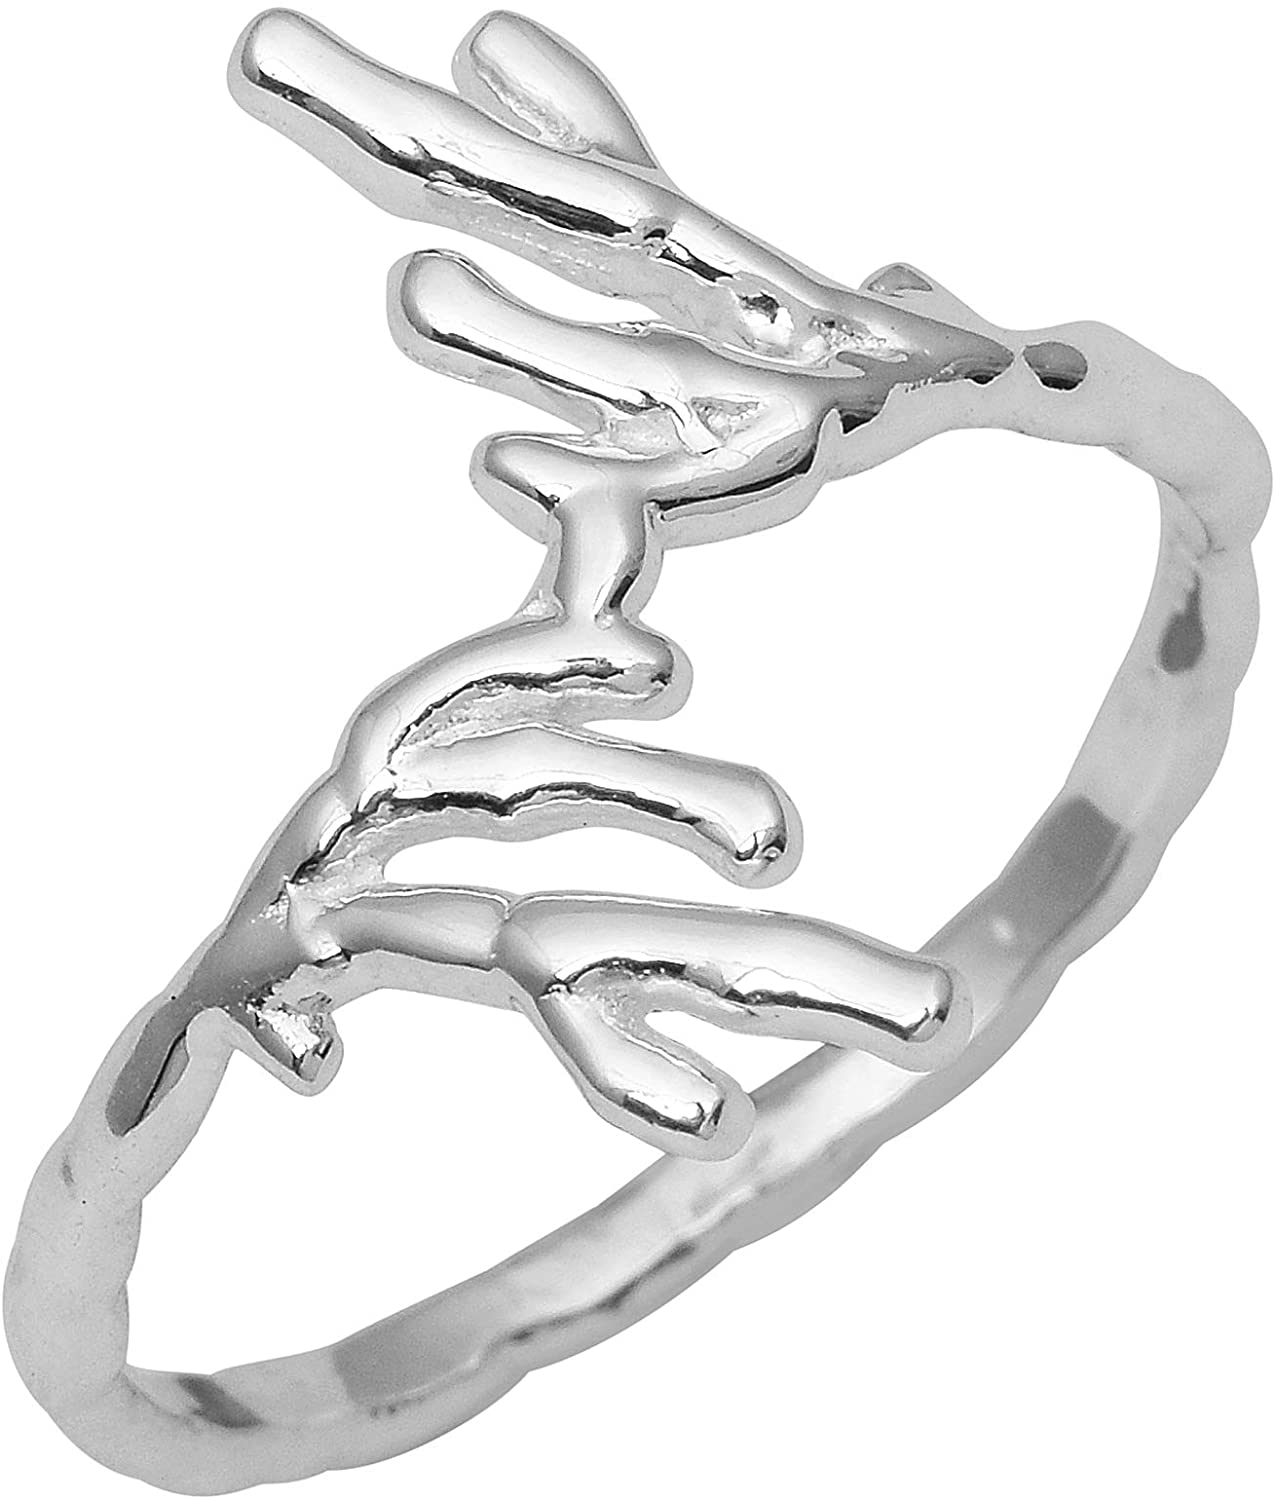 Solid 925 Sterling Silver Friendship Promise Stacking Ring